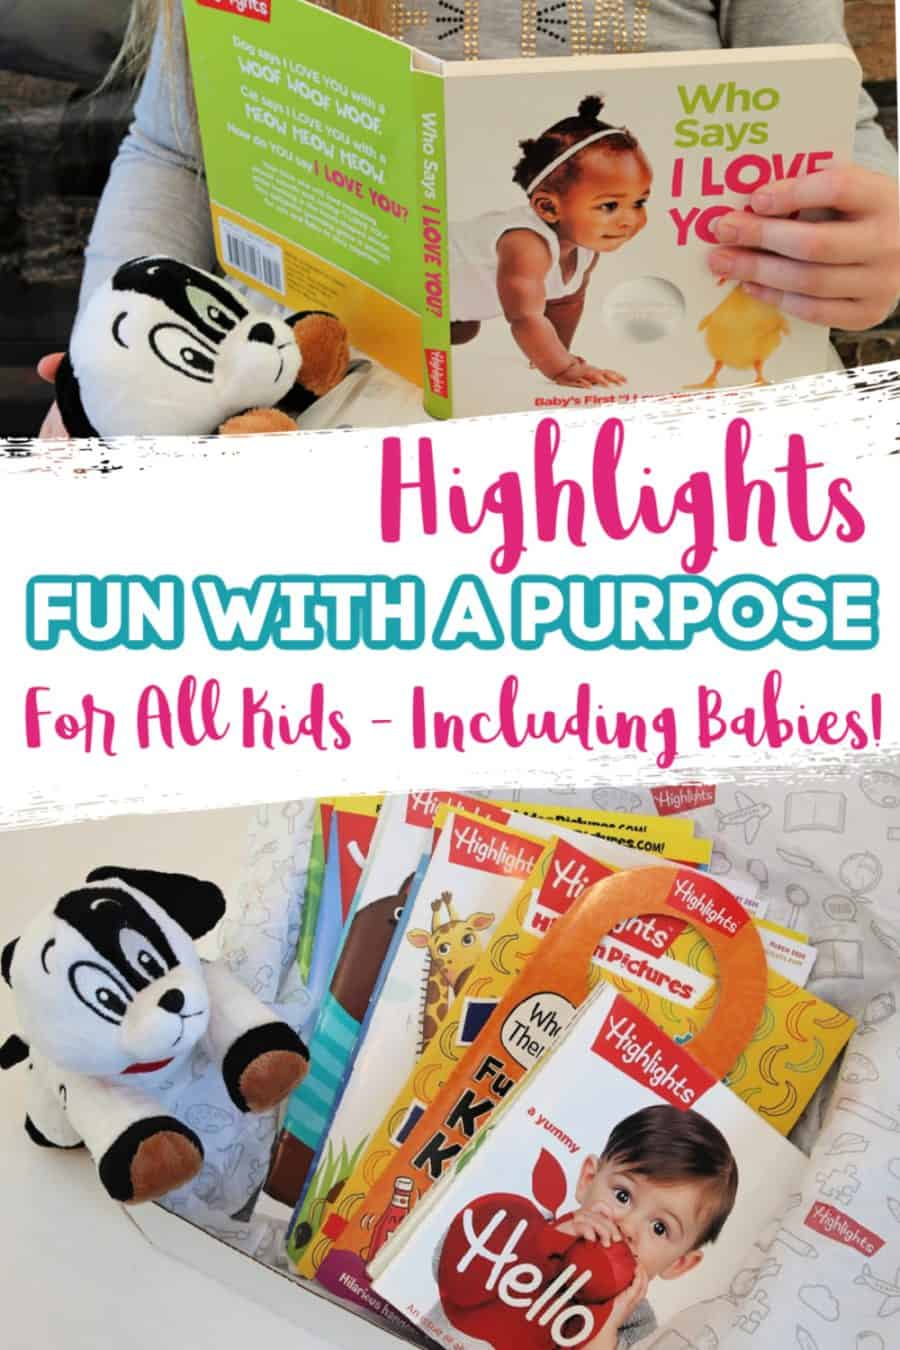 Highlights For Children Of All Ages - Including Babies! + BIG Sale {Fun With A Purpose}